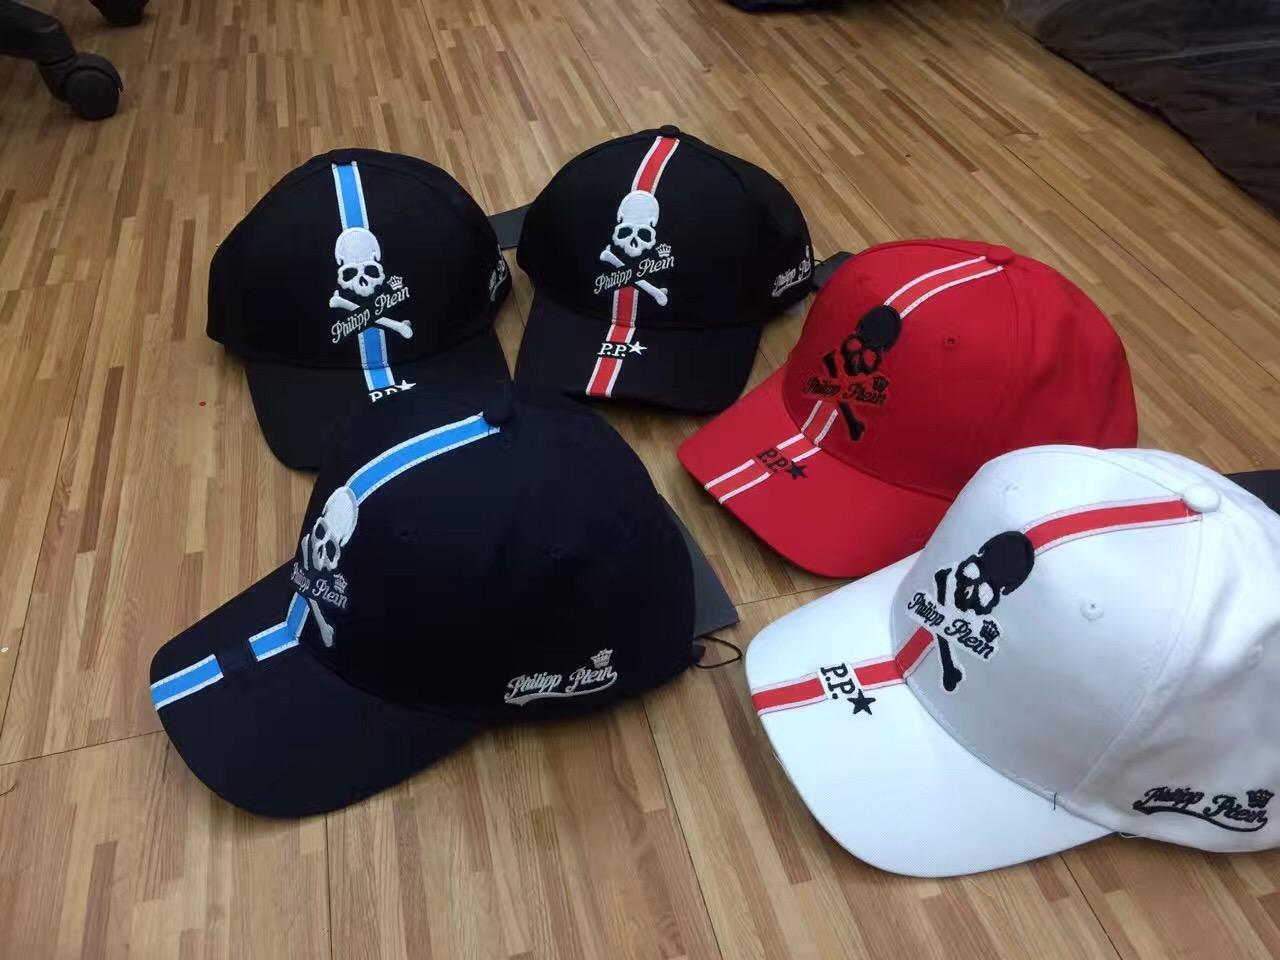 93ac428fc7a 2019 2018 Popular ICON Cap Hip Hop Baseball Cap Hat Metal Letter 78 Caps  For Men Women Snapback Brand Cap From D2pp2018